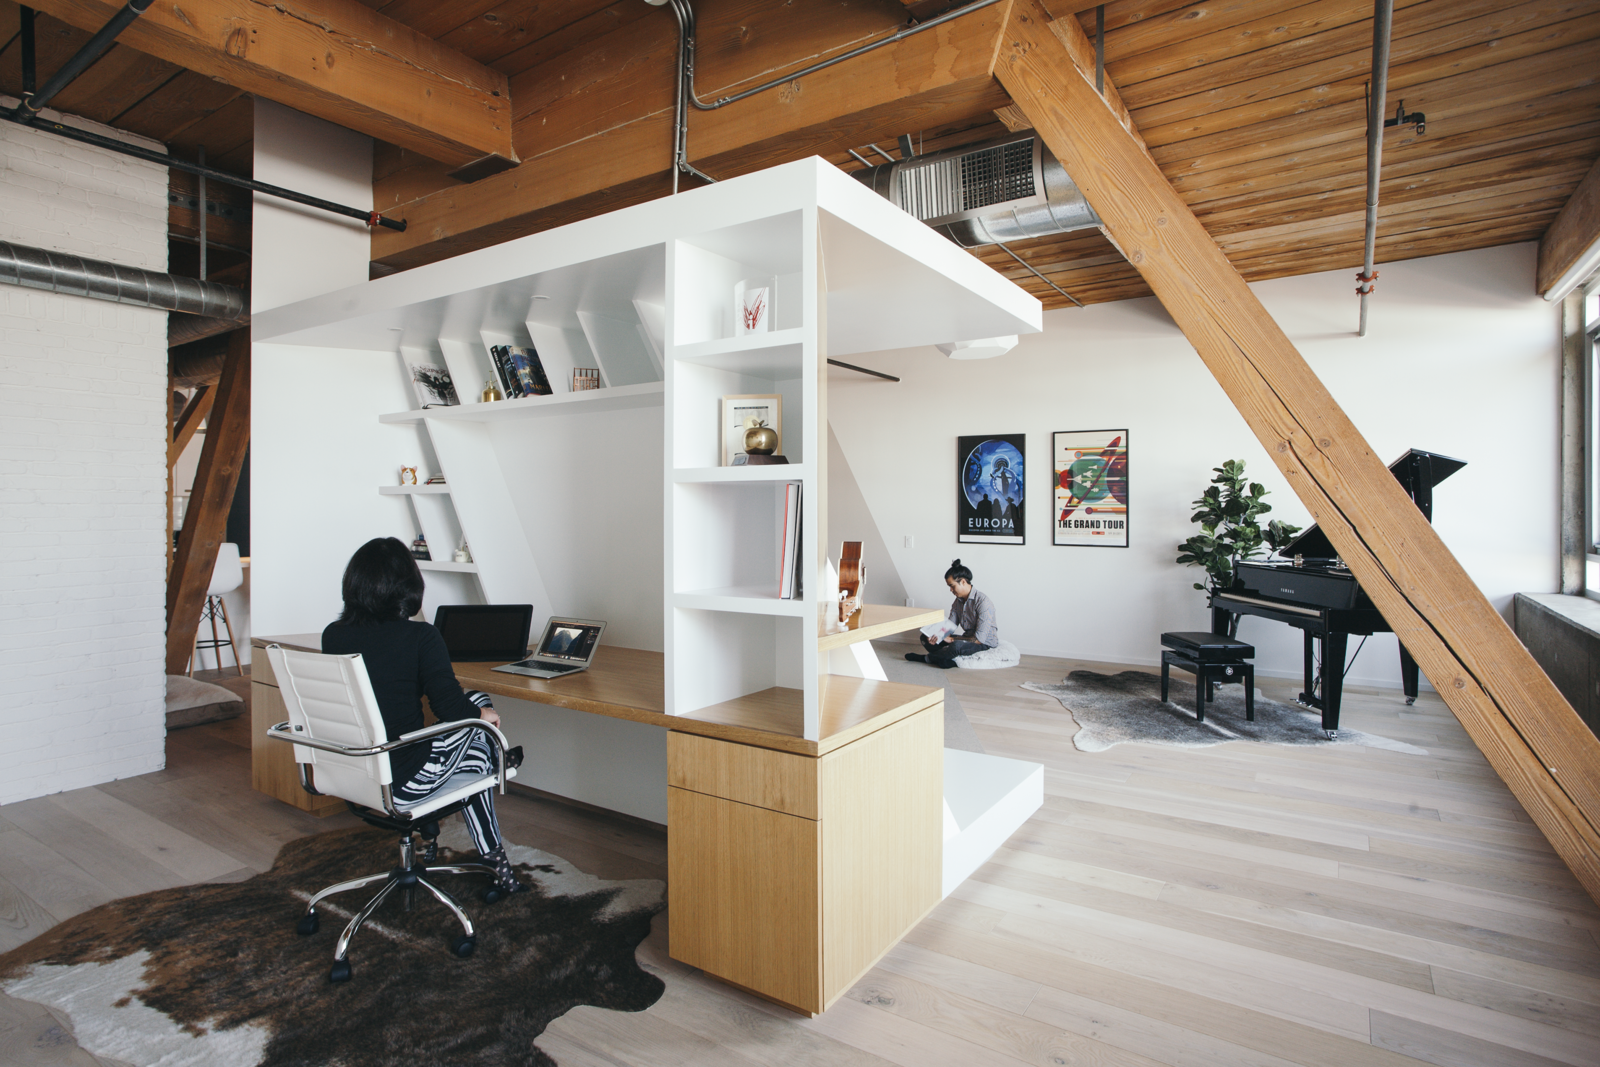 8 Examples That Show How Loft Living Goes Beyond Just NYC - Dwell